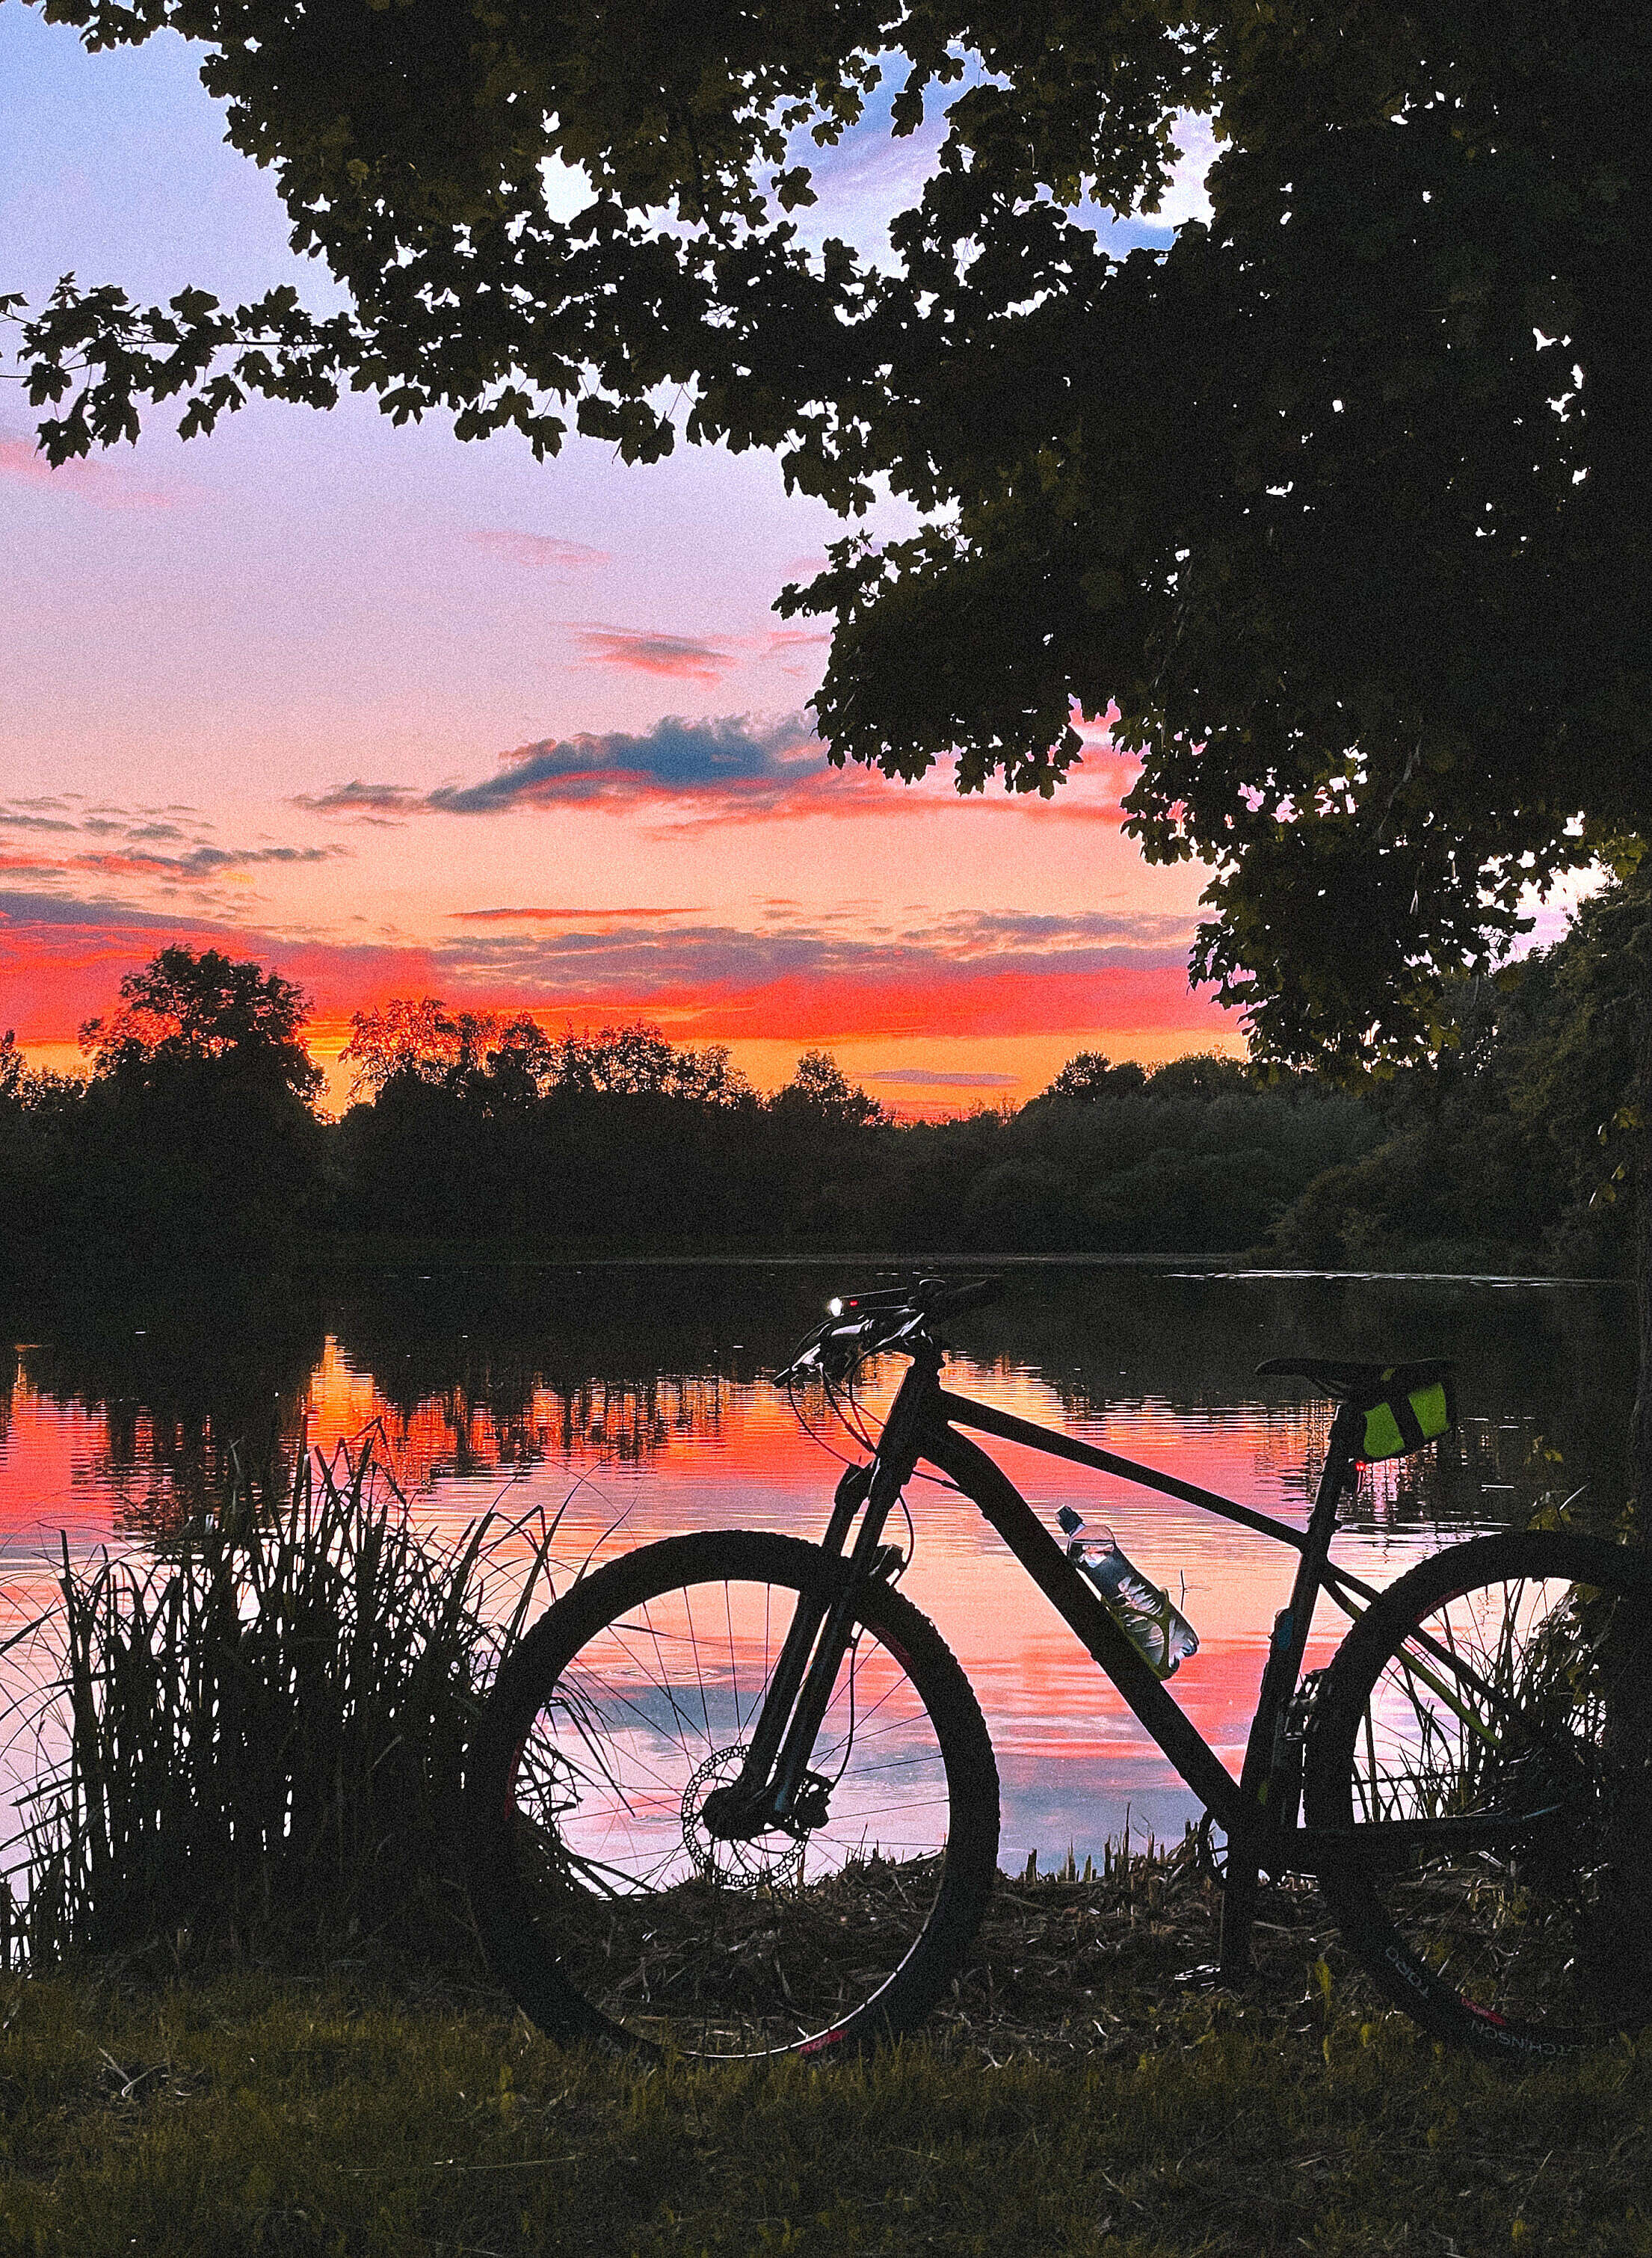 Evening MTB Ride Mountain Bike with Sunset Golden Sky Free Stock Photo